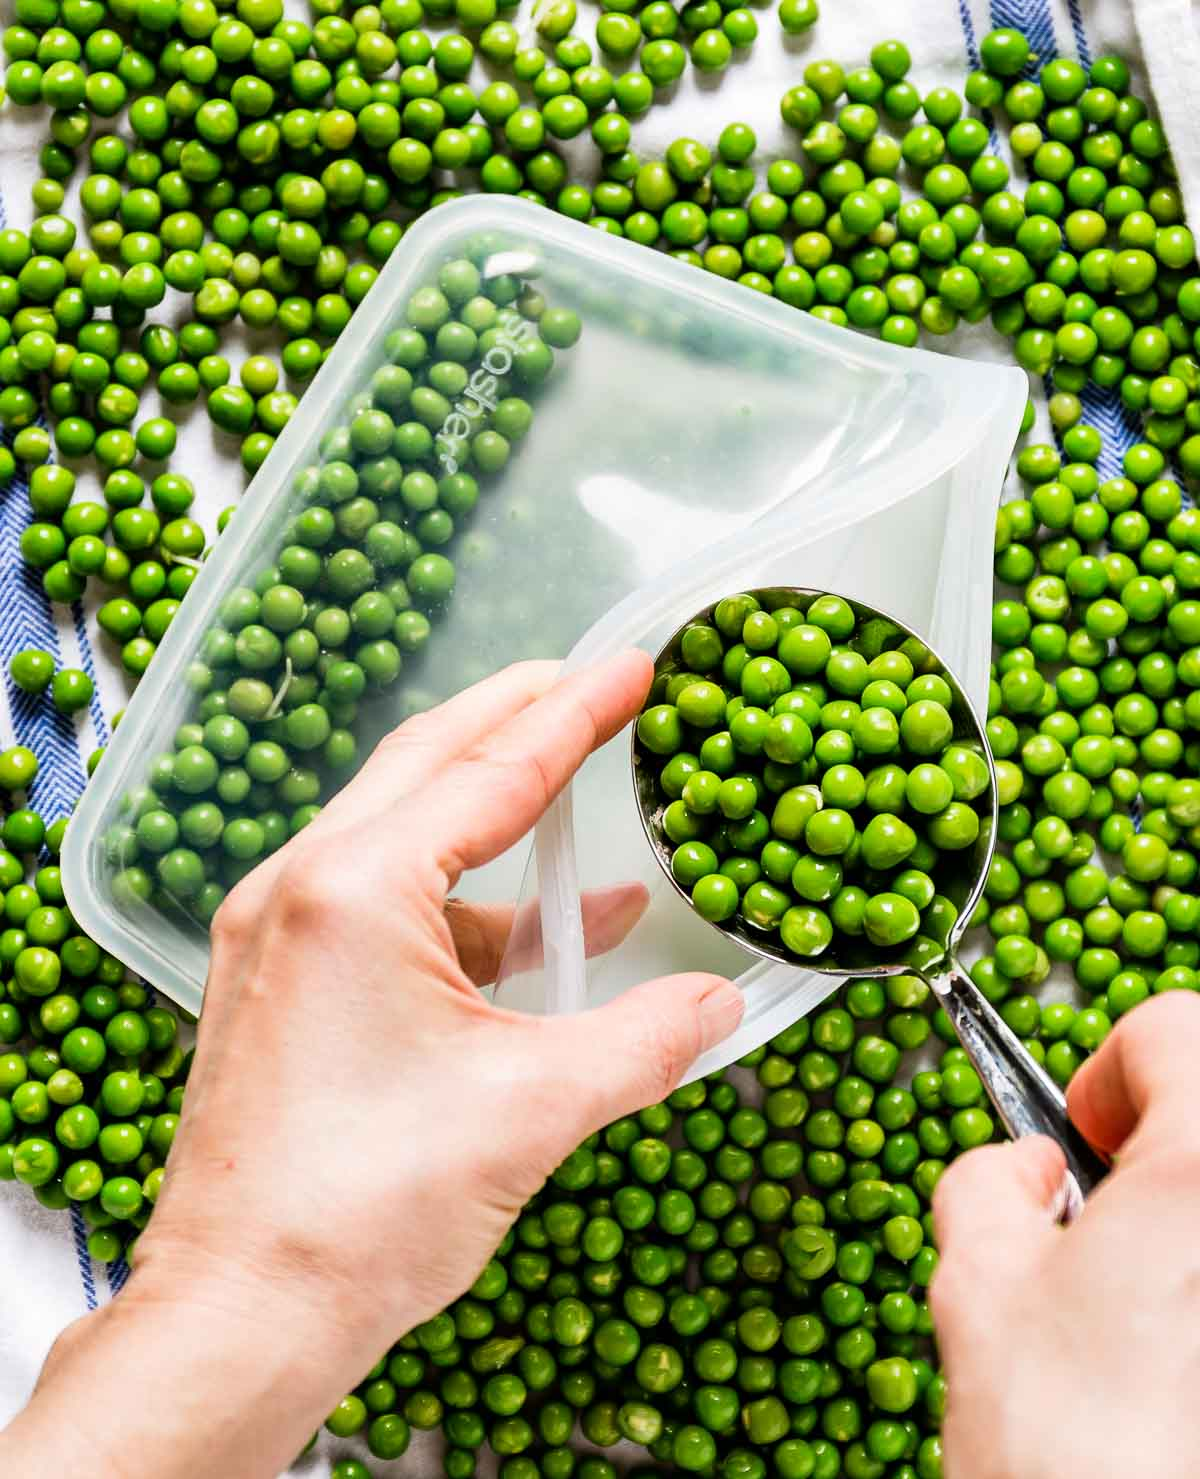 Person storing peas in a freezer bag with a spoon